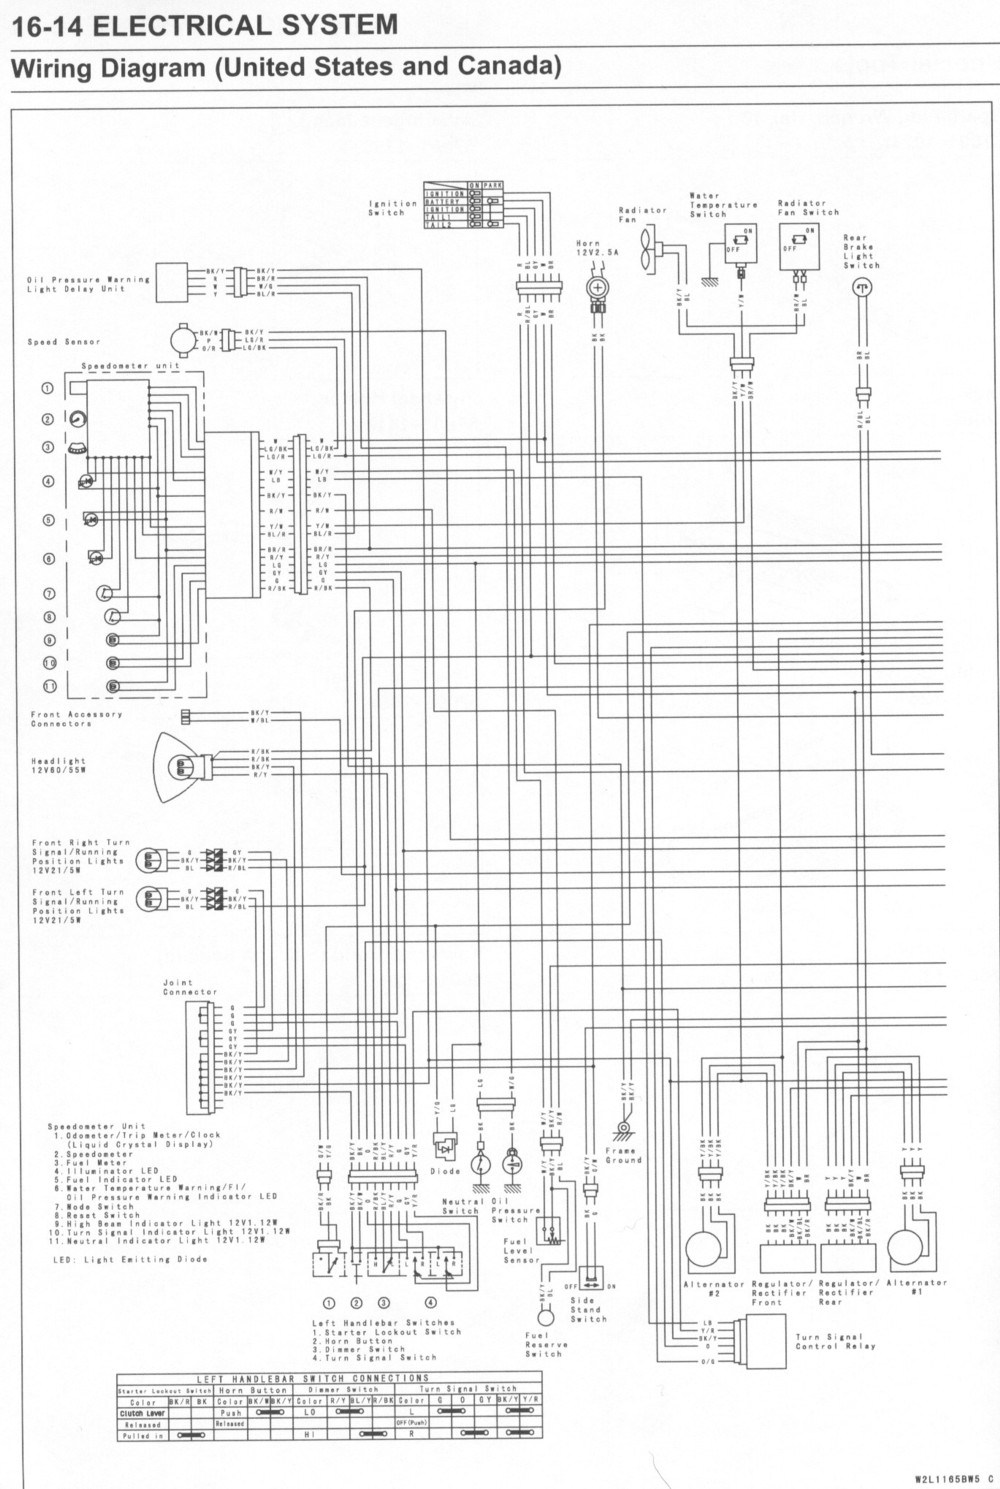 DIAGRAM] 2001 Kawasaki Vulcan 1500 Wiring Diagram Free Picture FULL Version  HD Quality Free Picture - UMLCLASSDIAGRAM.VAGALUME.FRWiring And Fuse Image - vagalume.fr